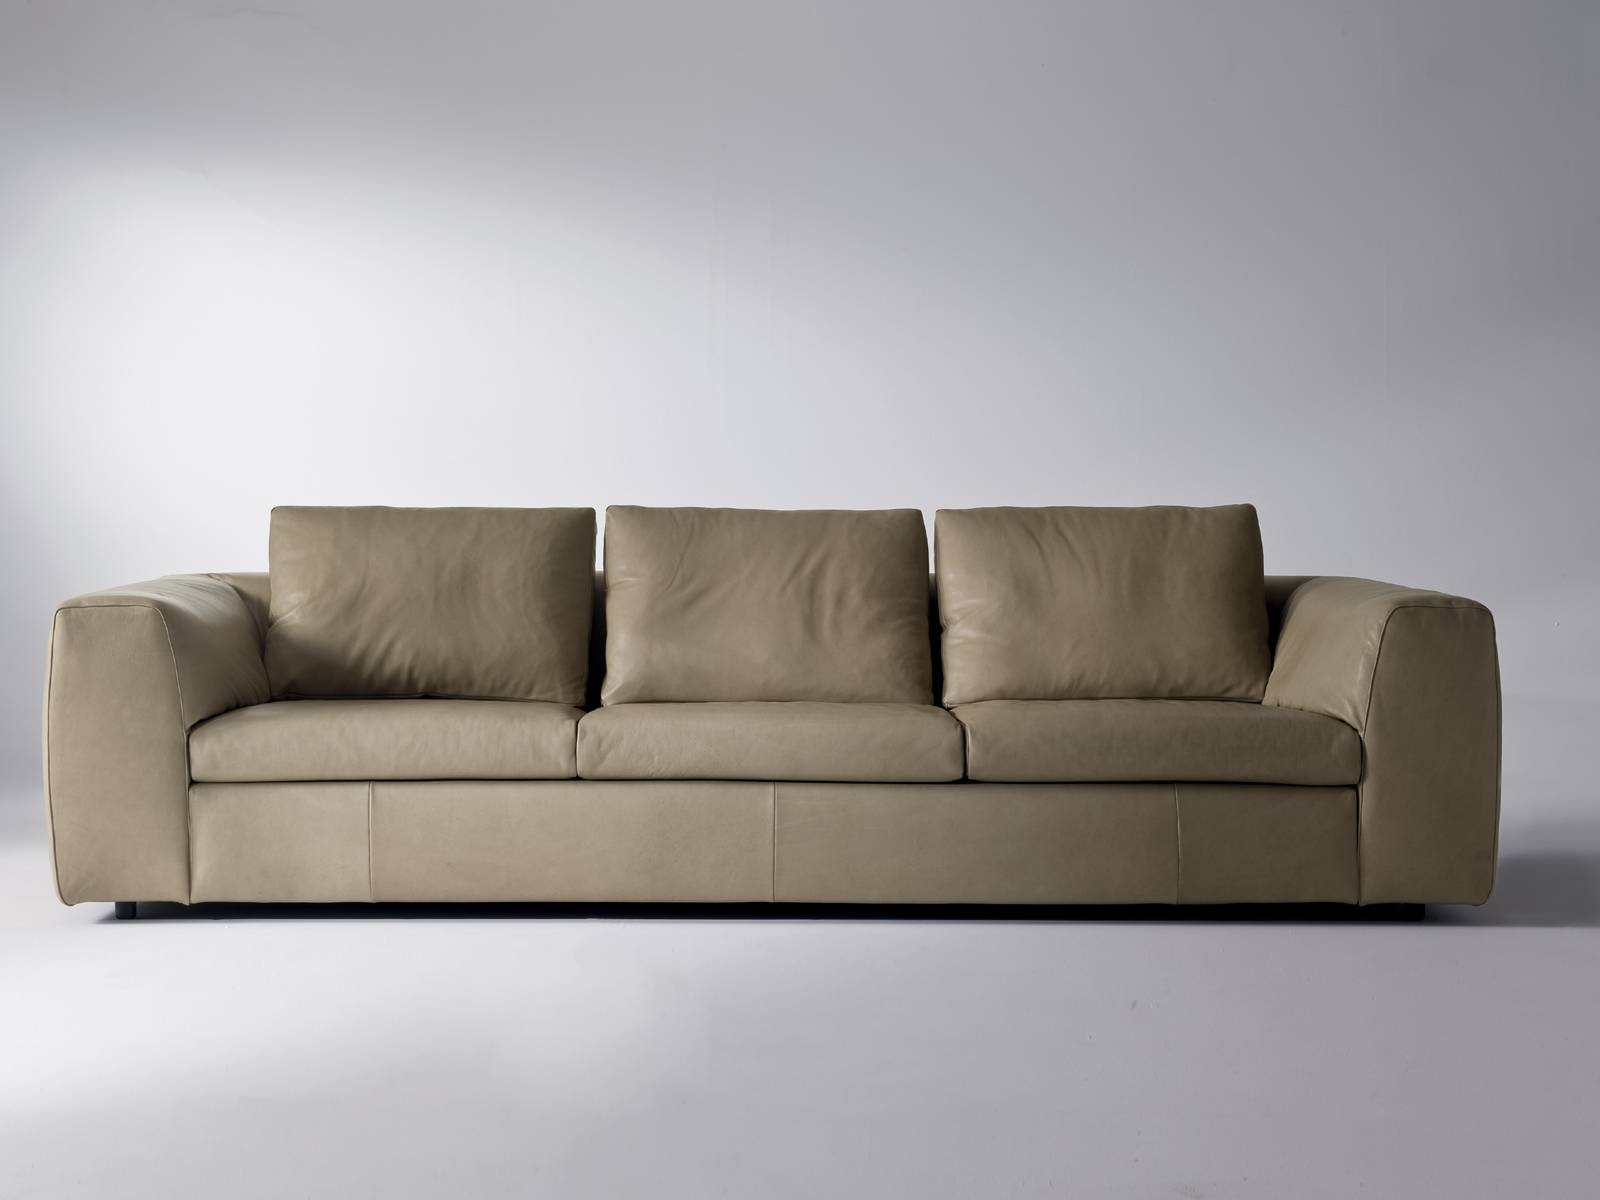 Three Seater Sofas – Thesofa intended for Modern 3 Seater Sofas (Image 29 of 30)